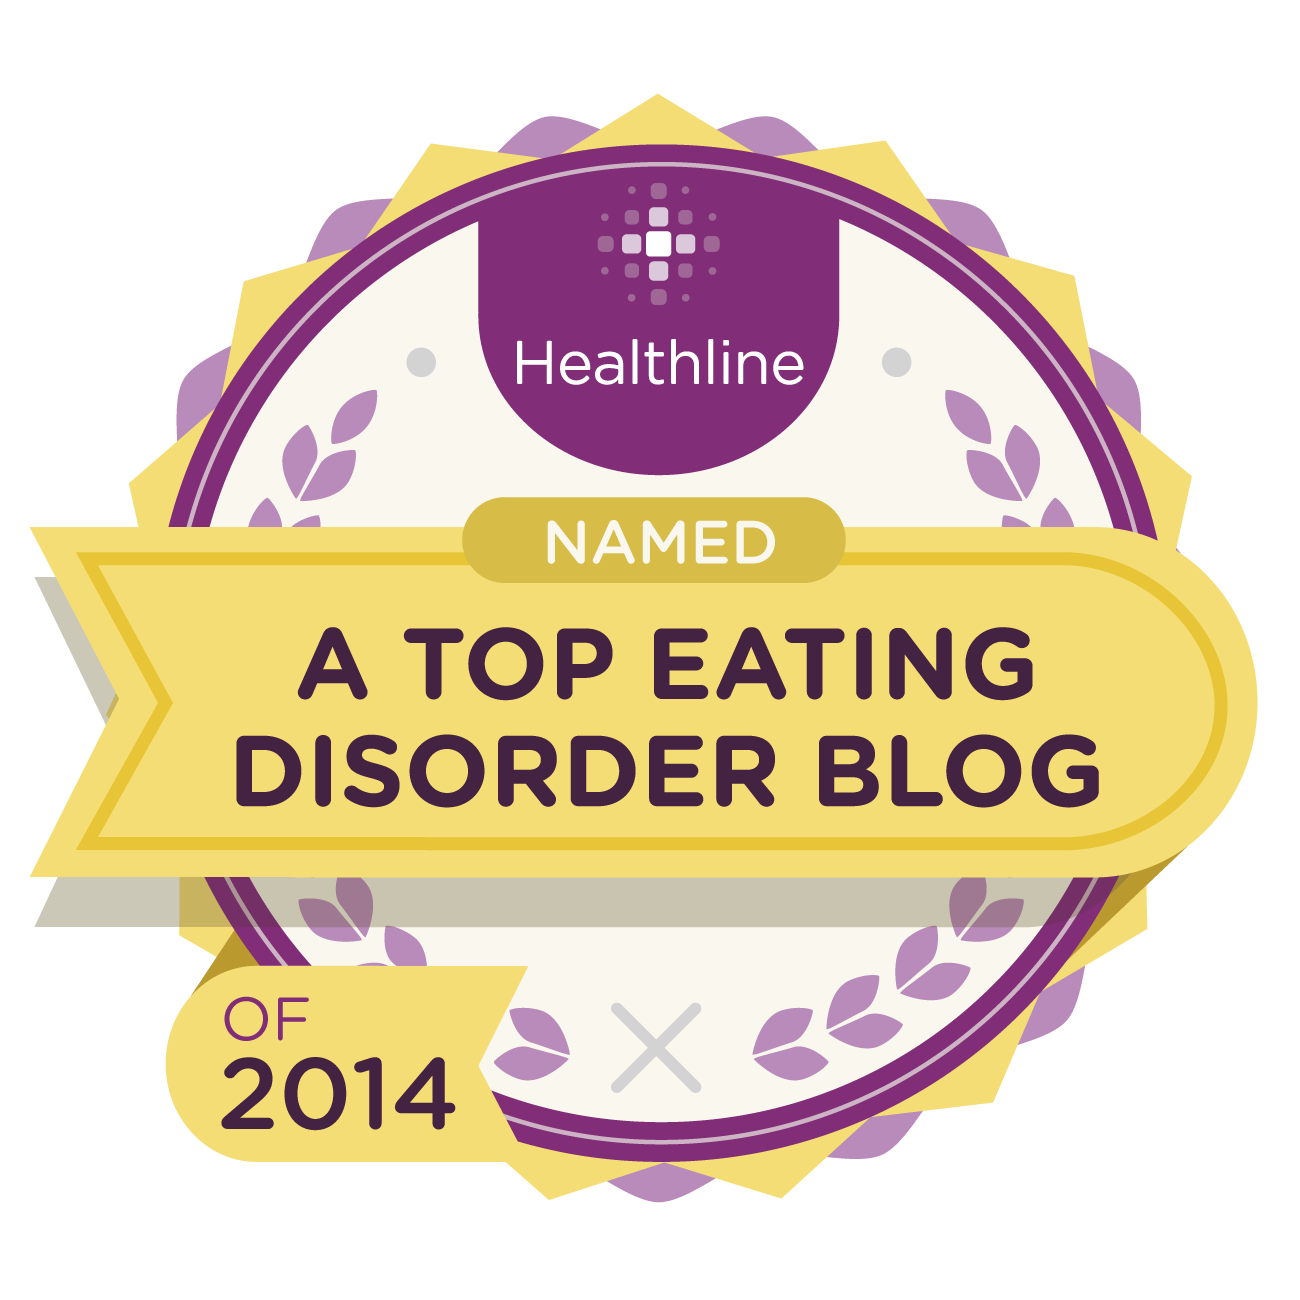 The Best Eating Disorder Health Blogs of 2014